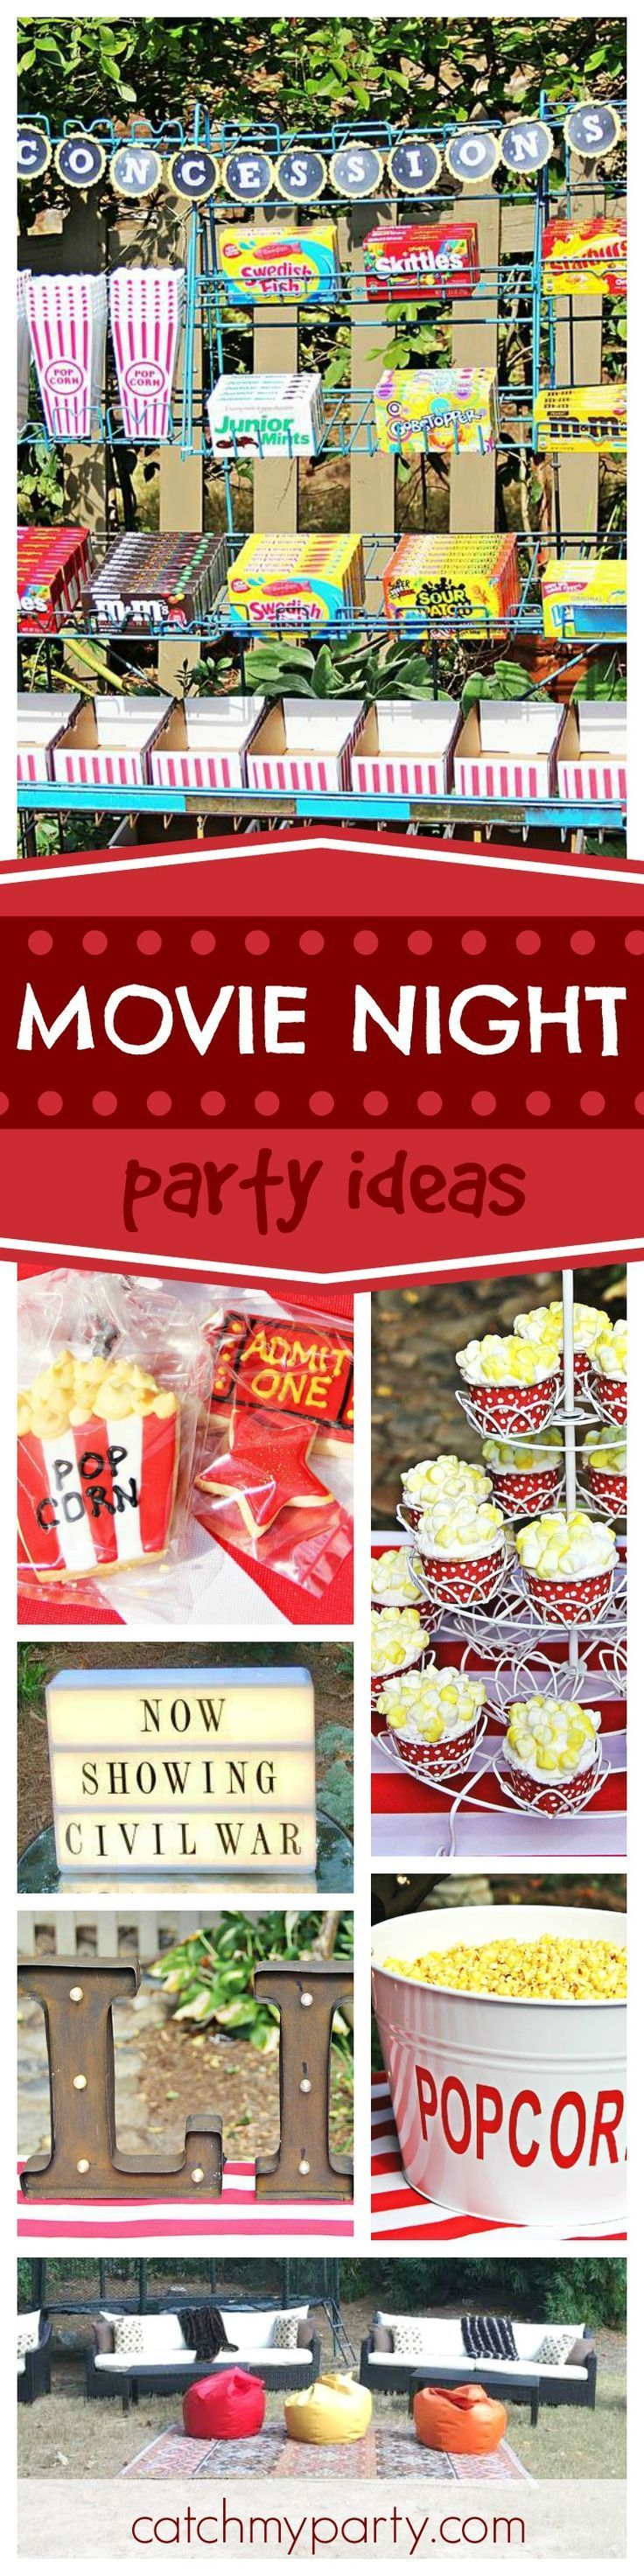 "Moonlight and Movies Birthday ""Moonlight and Movies"""